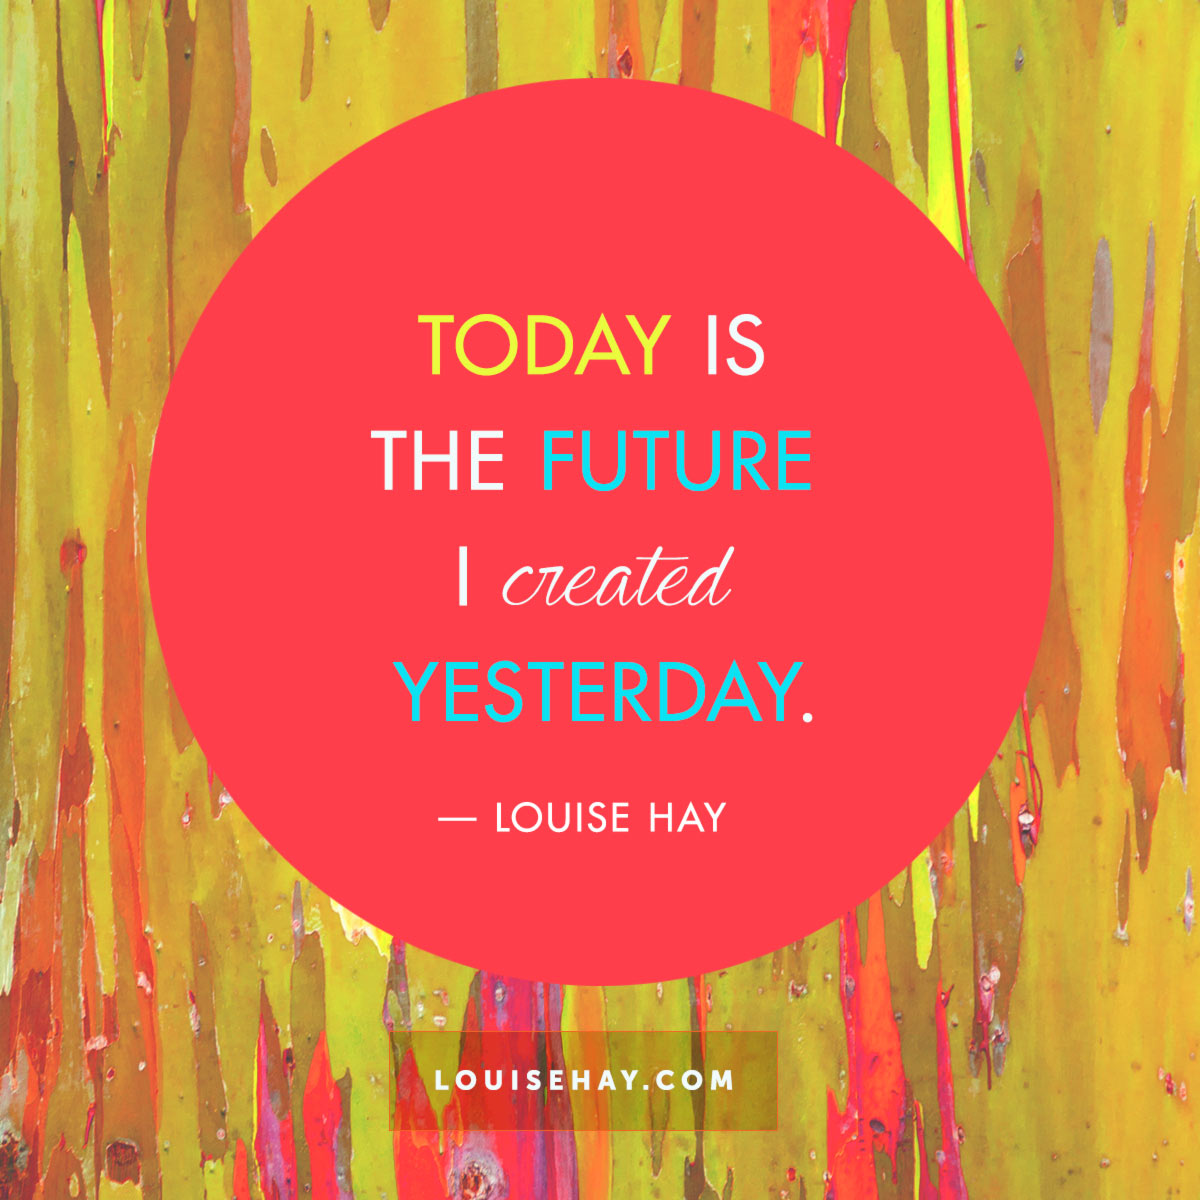 Inspirational Quotes about inspiration | Today is the future I created yesterday. — Louise Hay